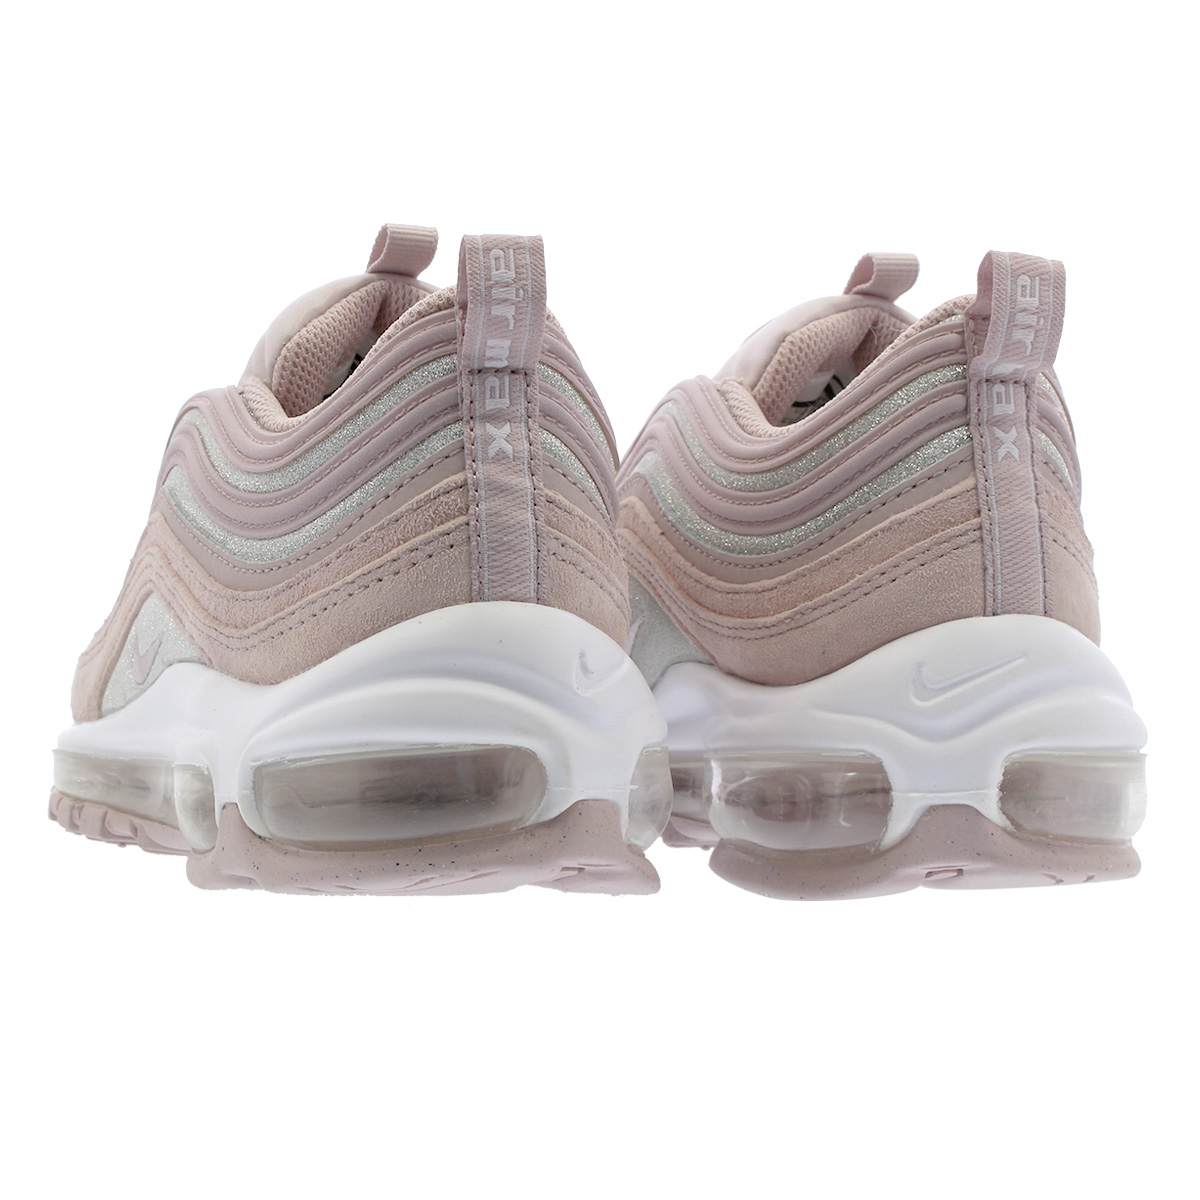 new arrival 1c7df bc18d NIKE WMNS AIR MAX 97 Nike women Air Max 97 PARTICLE ROSEPARTICLE ROSE  at0071-600